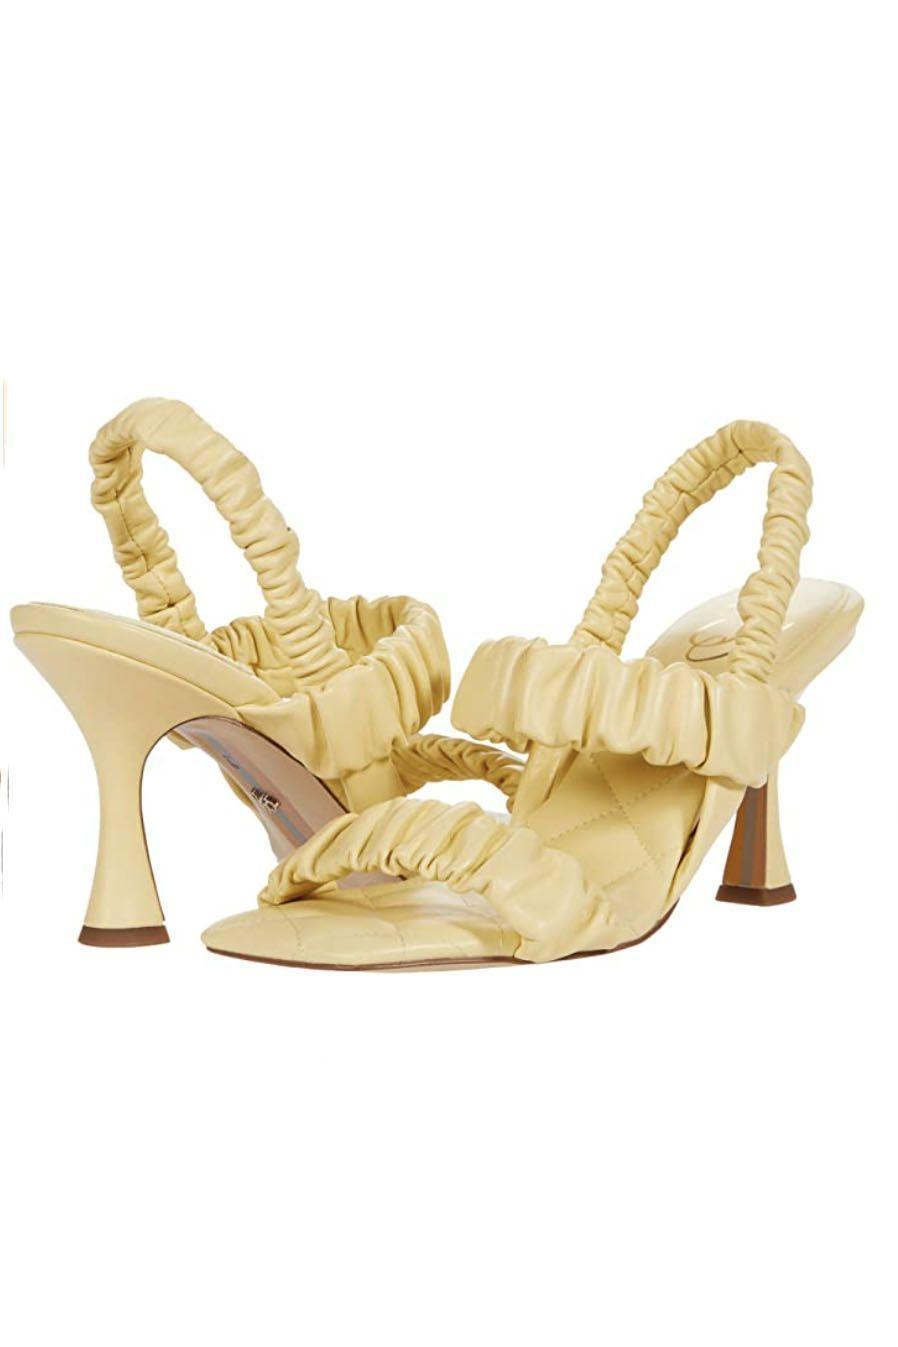 """<p><strong>Sam Edelman</strong></p><p>amazon.com</p><p><strong>$139.95</strong></p><p><a href=""""https://www.amazon.com/dp/B08VGK9Y3D?tag=syn-yahoo-20&ascsubtag=%5Bartid%7C10049.g.36746335%5Bsrc%7Cyahoo-us"""" rel=""""nofollow noopener"""" target=""""_blank"""" data-ylk=""""slk:Shop Now"""" class=""""link rapid-noclick-resp"""">Shop Now</a></p><p>You can never have too many heels, and these adorable ruched sandals make a strong case for adding another pair. I mean how? Cute?</p>"""